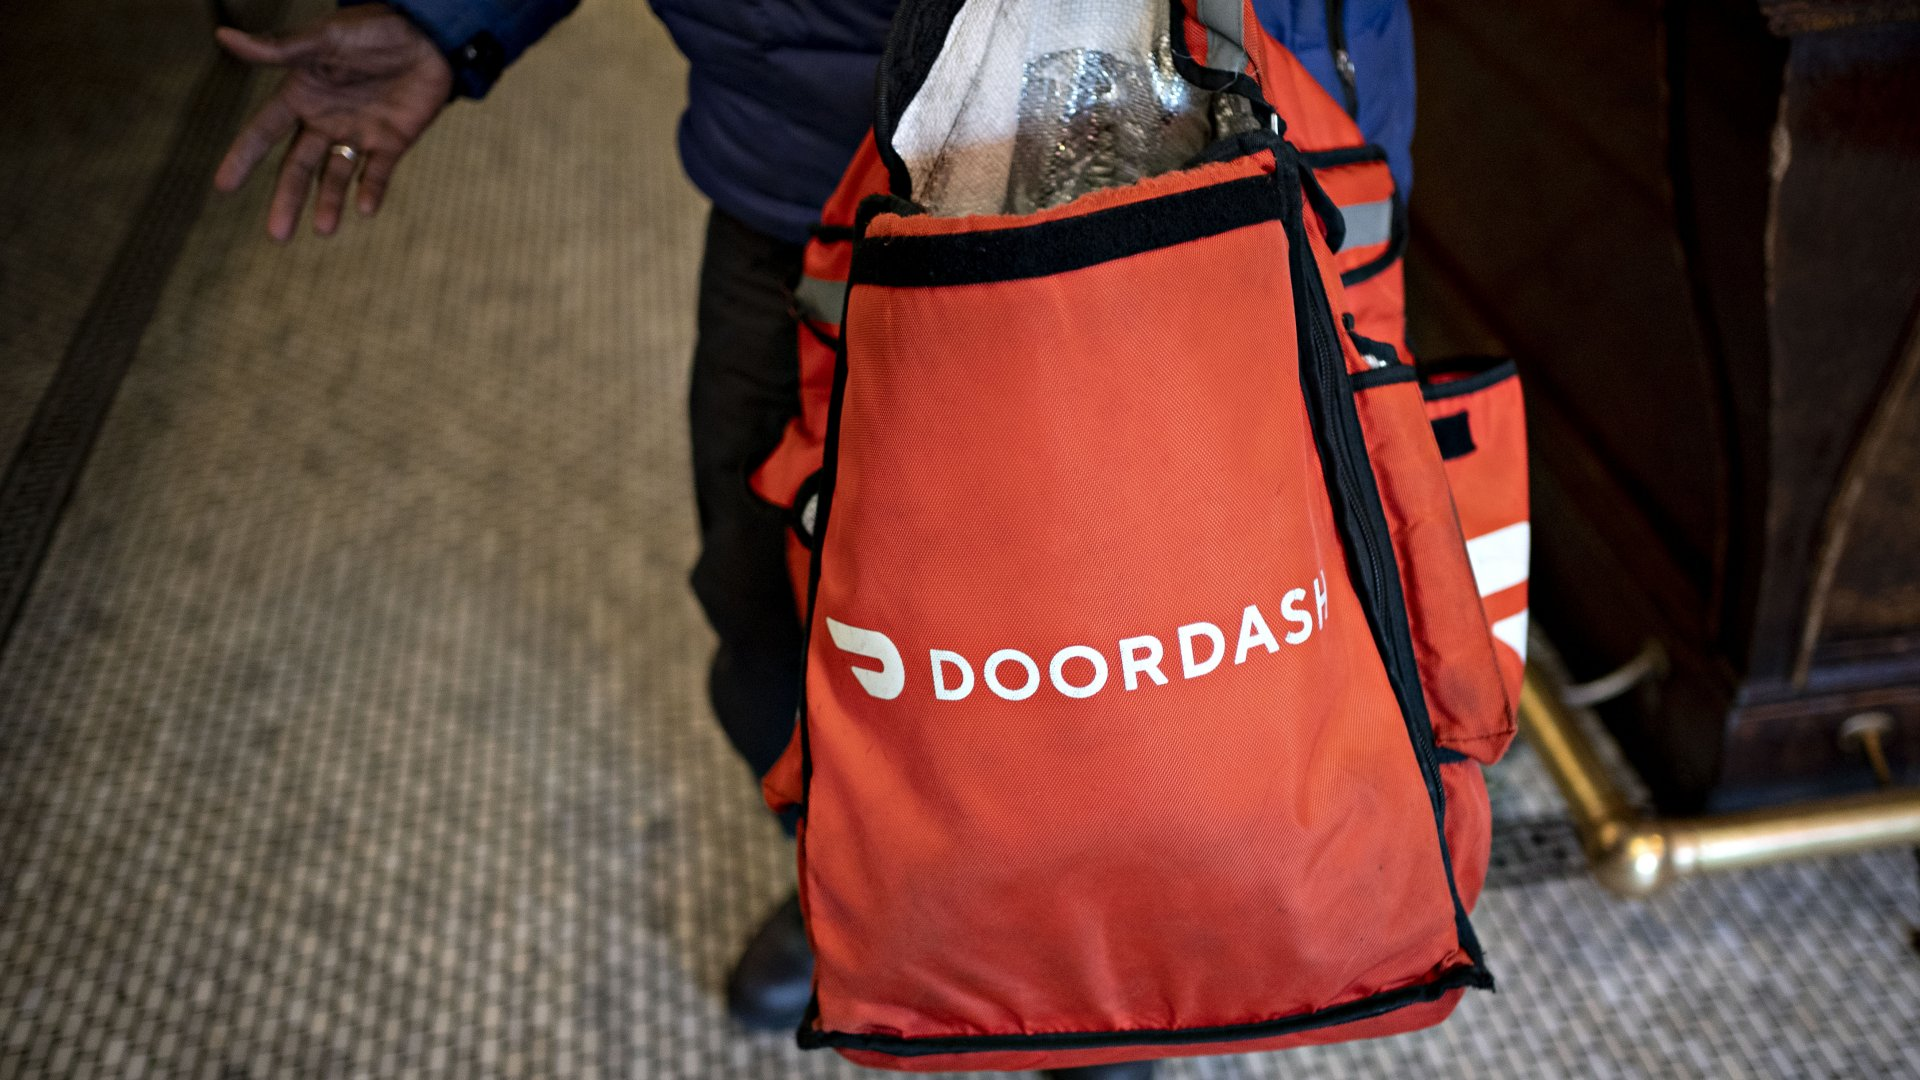 A DoorDash Inc. delivery person holds an insulated bag at a restaurant in Washington, D.C.